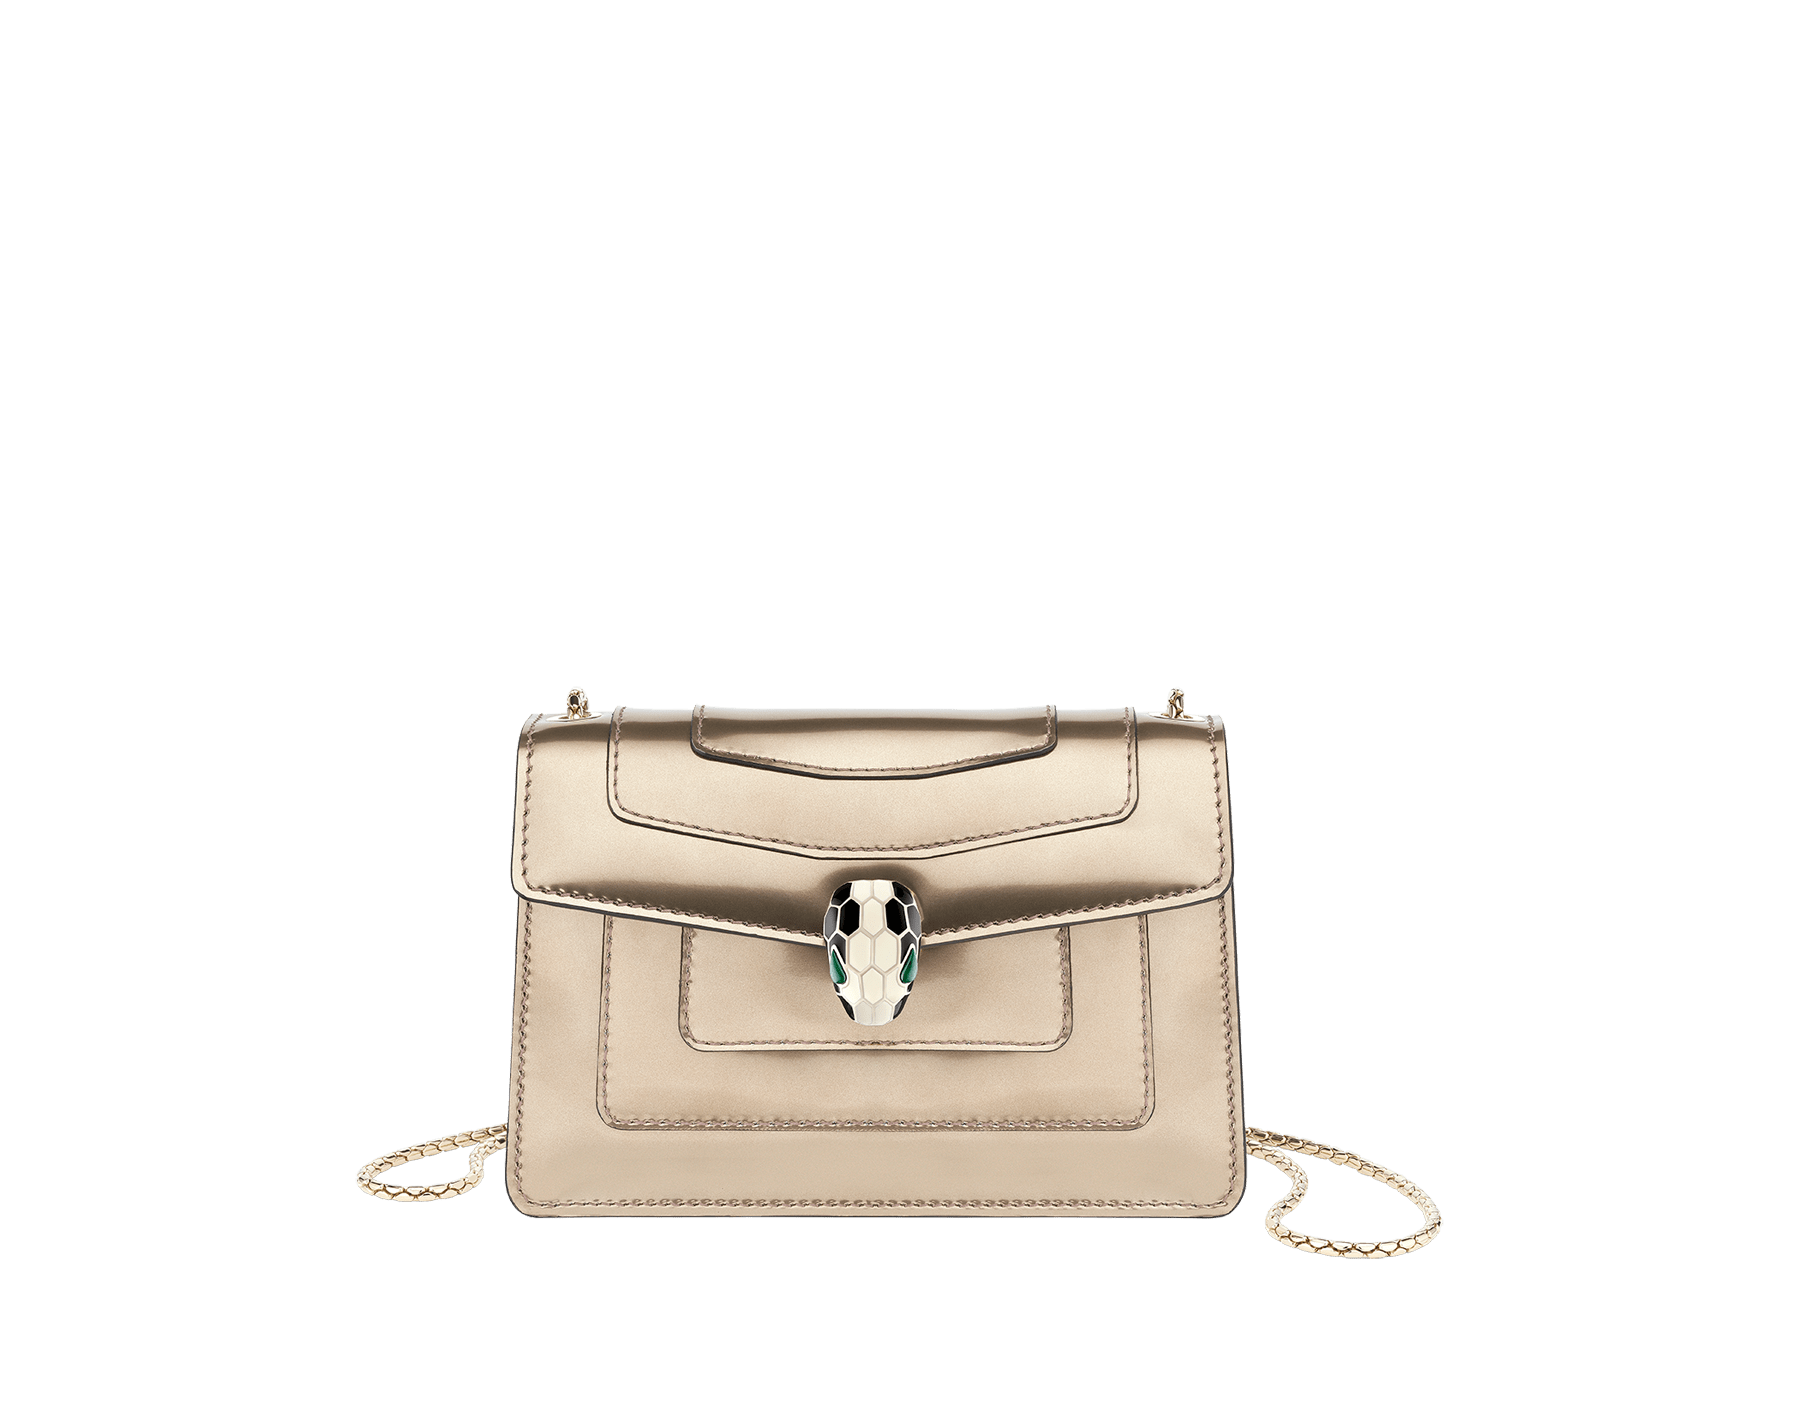 Serpenti Forever mini crossbody bag in antique bronze brushed metallic calf leather. Brass light gold plated snake head closure in black and white enamel, with green malachite eyes. 288049 image 1